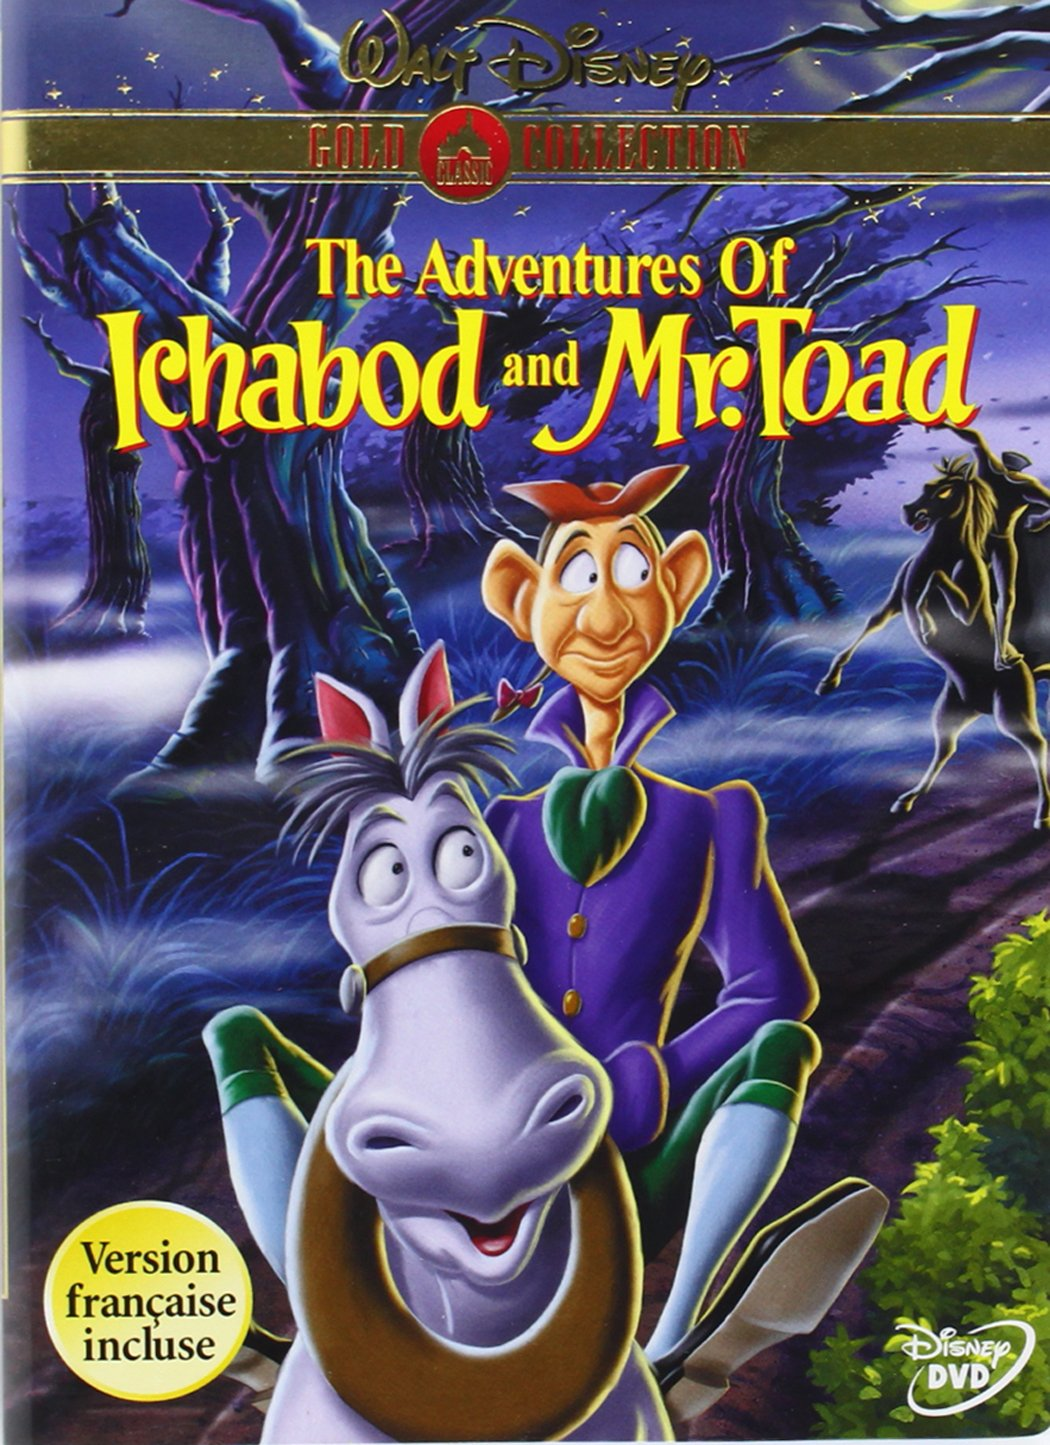 Amazon.com: The Adventures of Ichabod and Mr. Toad (Disney Gold Classic Collection): Bing Crosby, Basil Rathbone, Eric Blore, J. Pat O'Malley, John McLeish, Collin Campbell, Campbell Grant, Claud Allister, Leslie Denison, Edmond